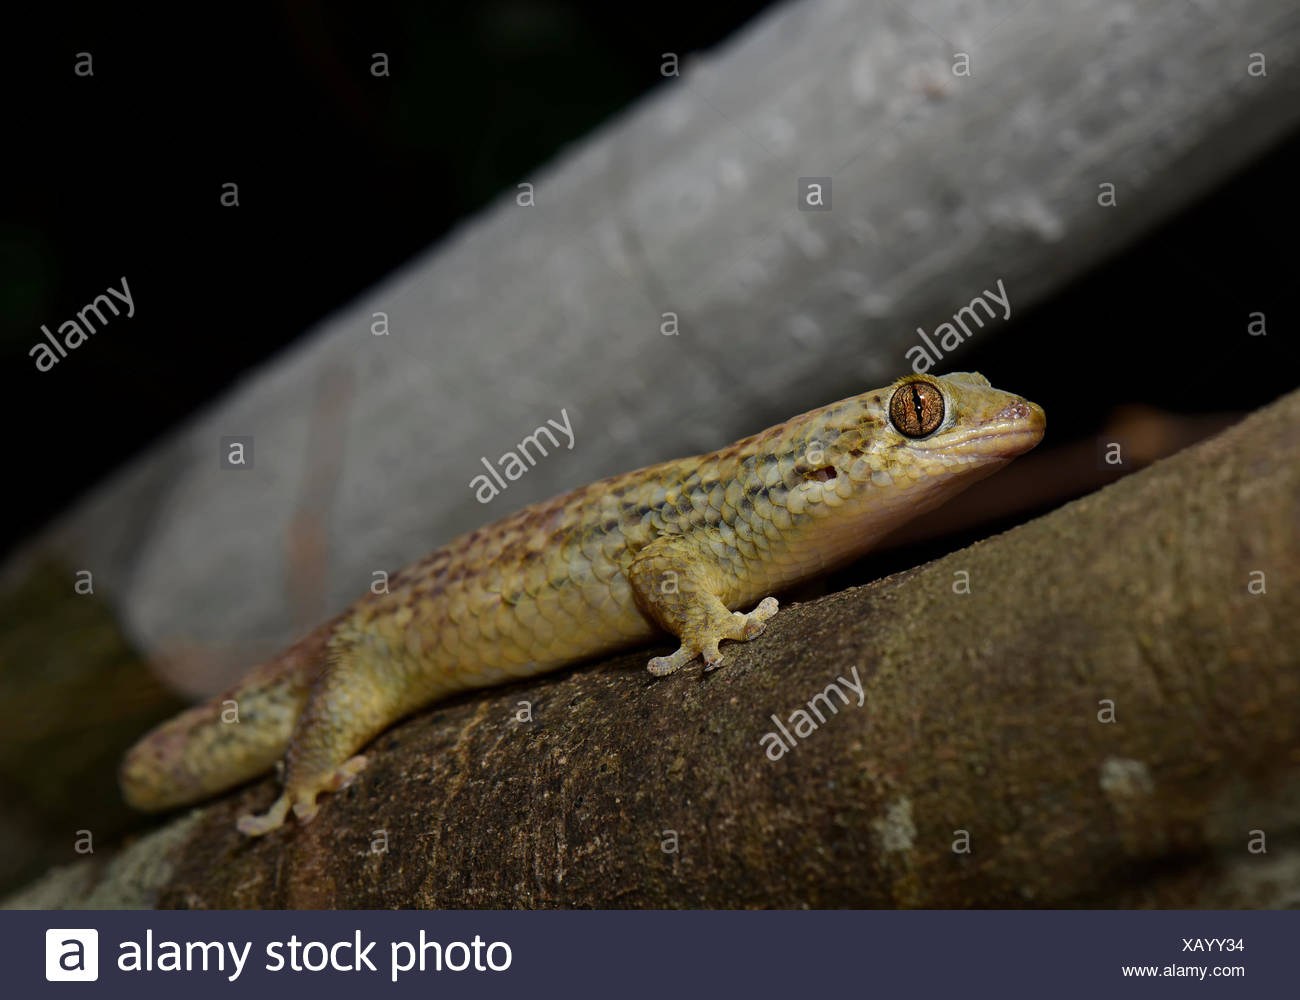 Fish scale gecko (Geckolepis maculata), dry forests of Kirindy, West Madagascar, Madakascar - Stock Image